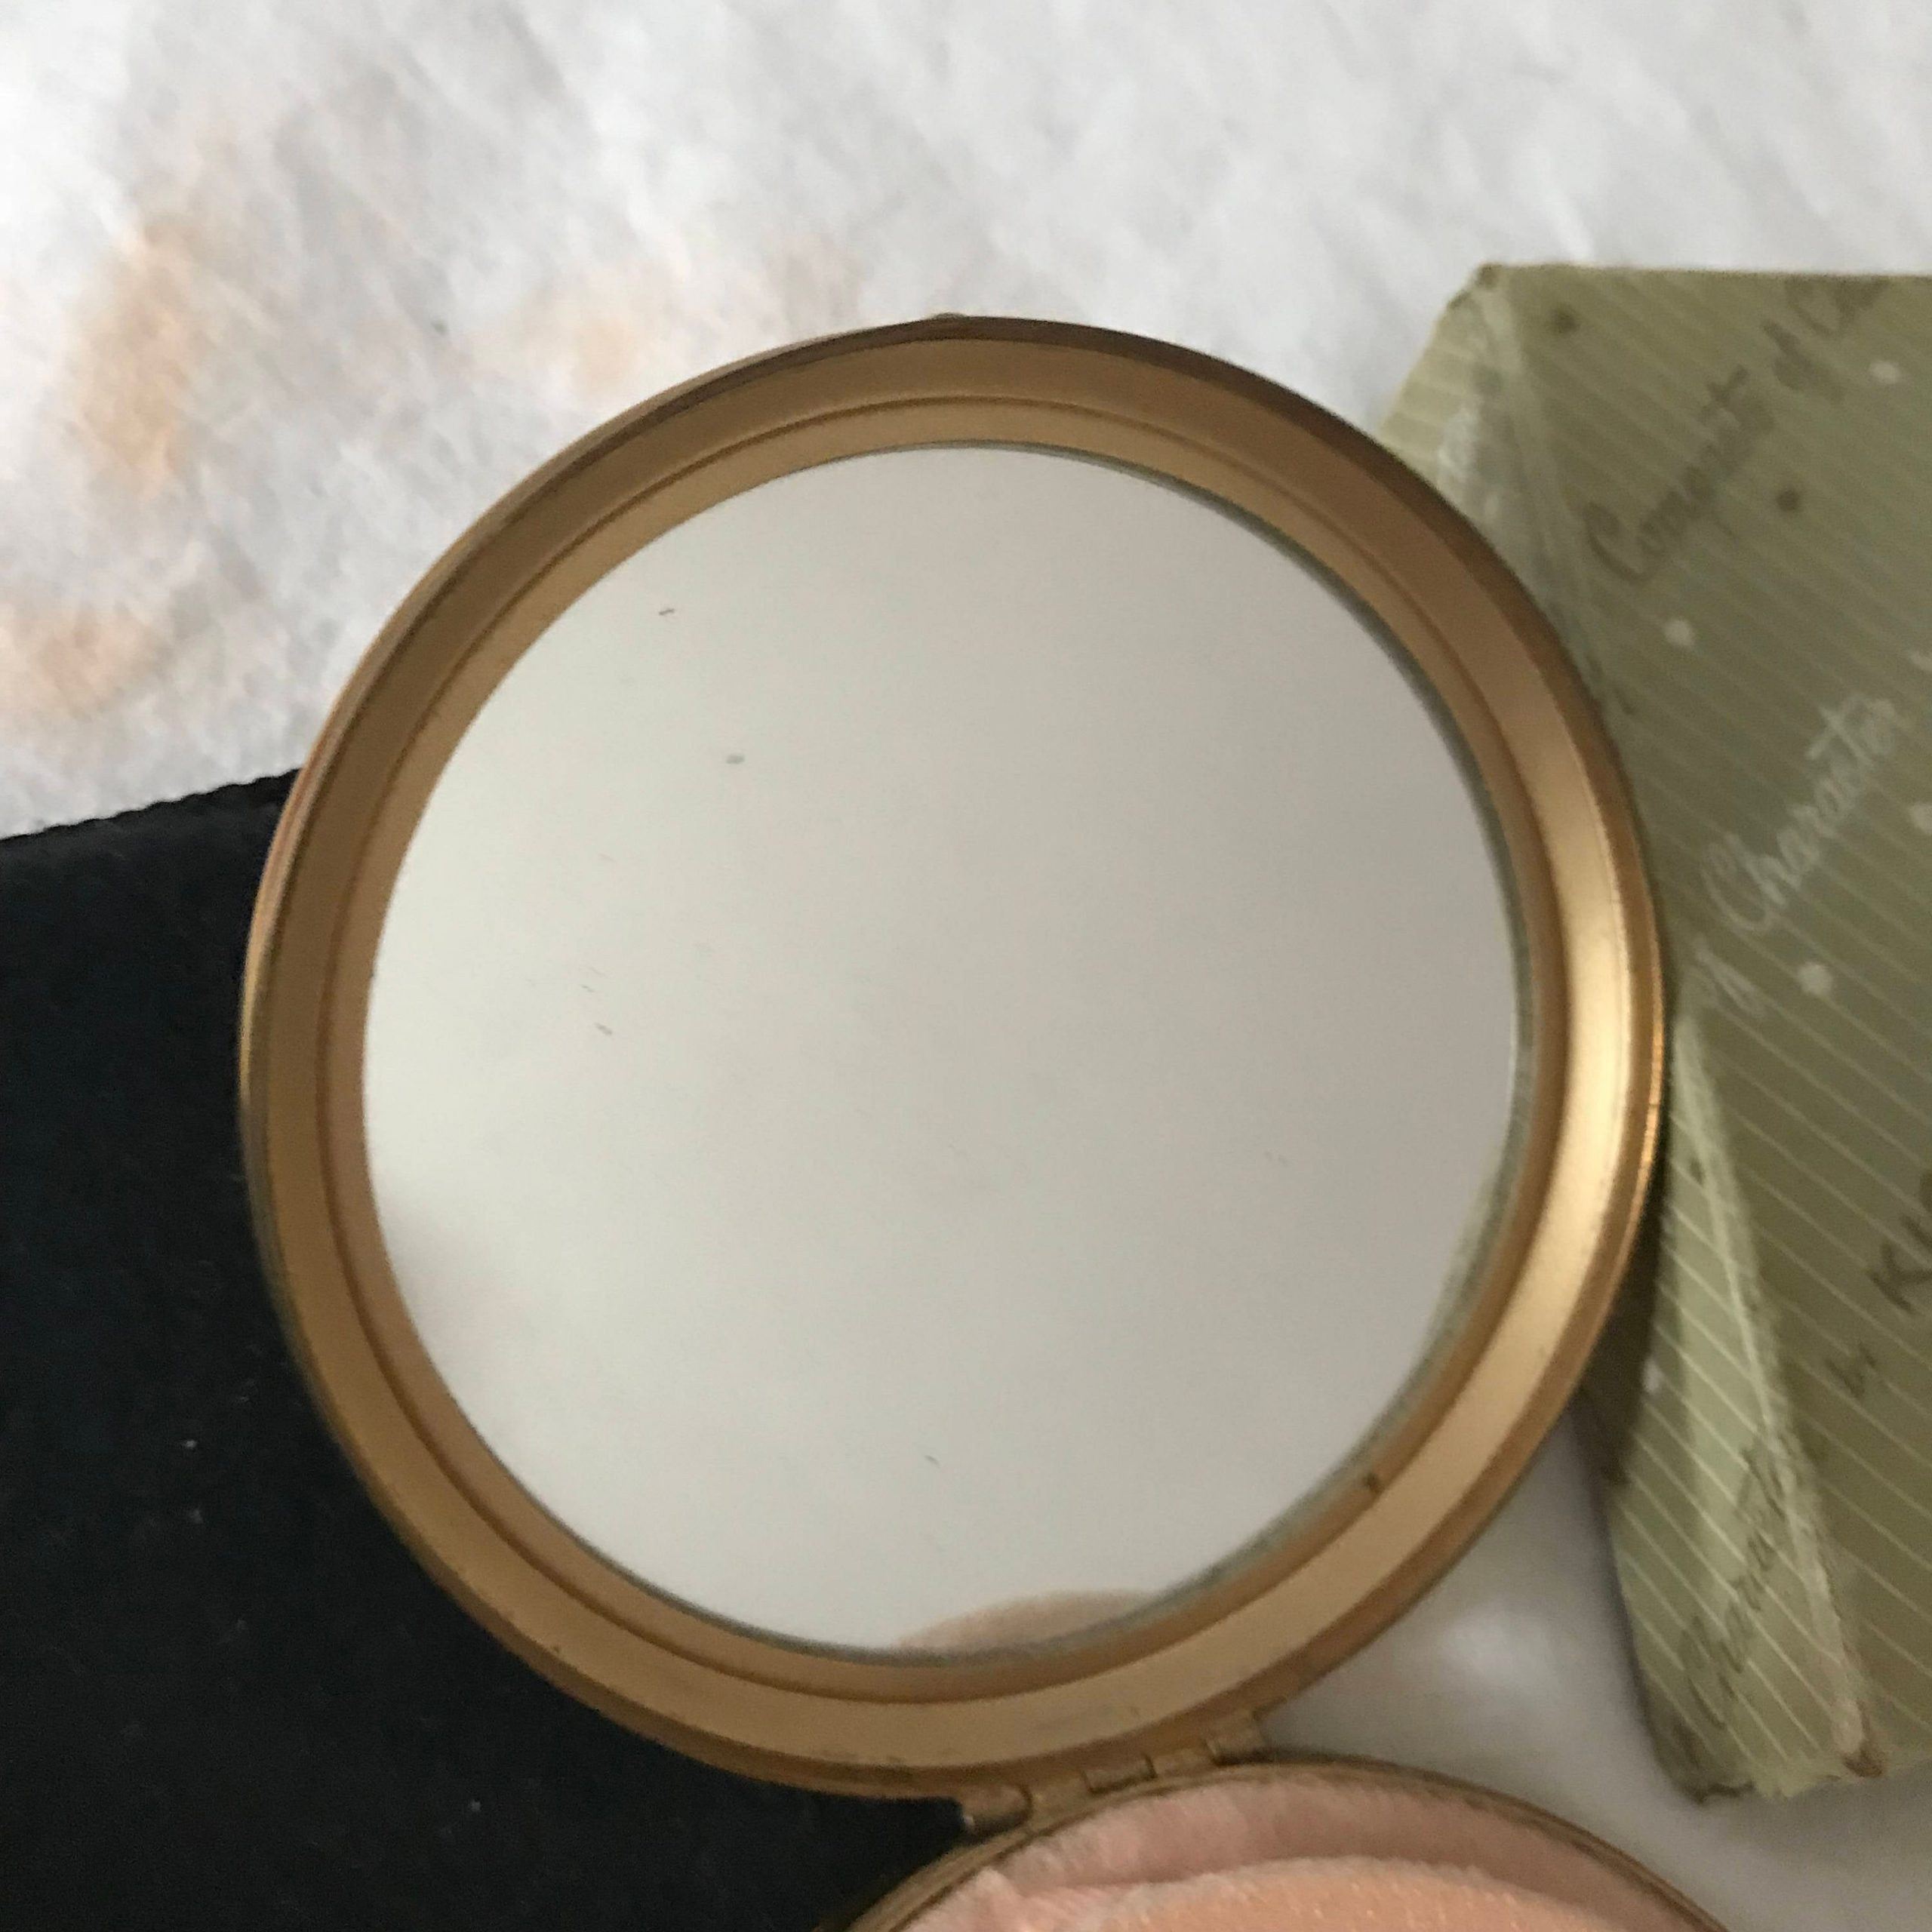 Vintage compact with the original box and pouch